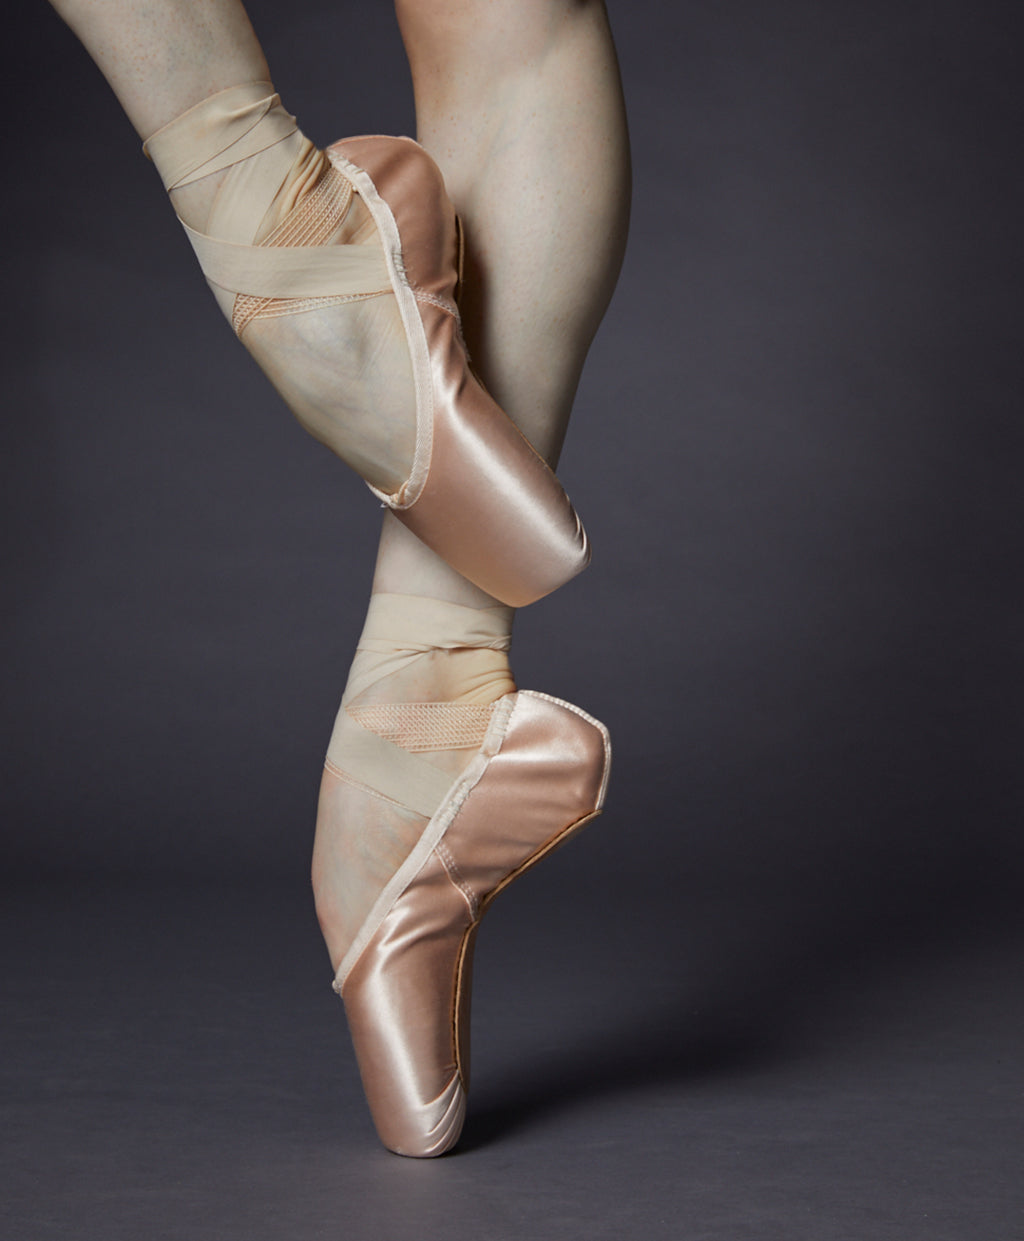 Ballet dancer dancing en pointe in the studio wearing Balance Lisse pointe shoes